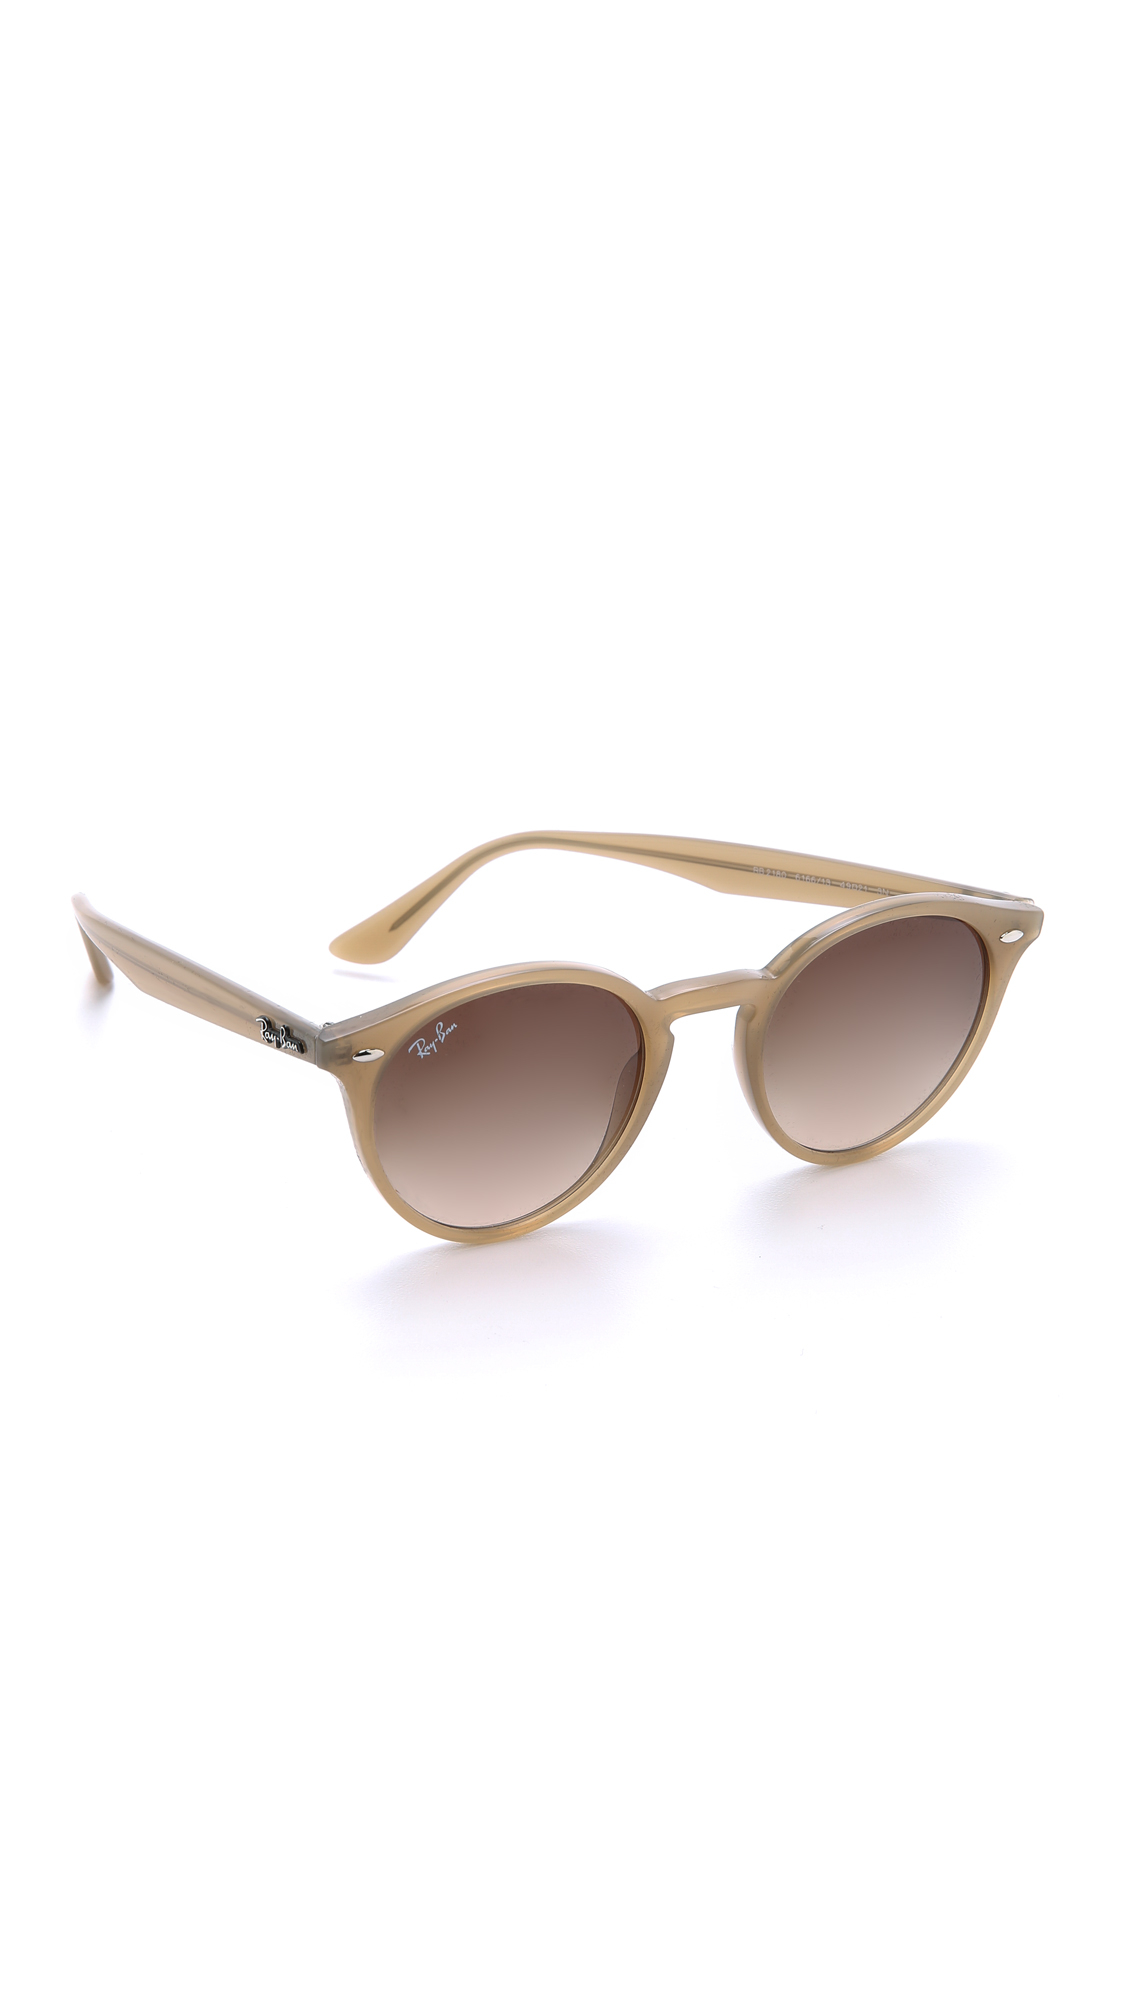 e6b42fe31fa Ray Ban 3025 Brown Gradient Aviators Wife « Heritage Malta